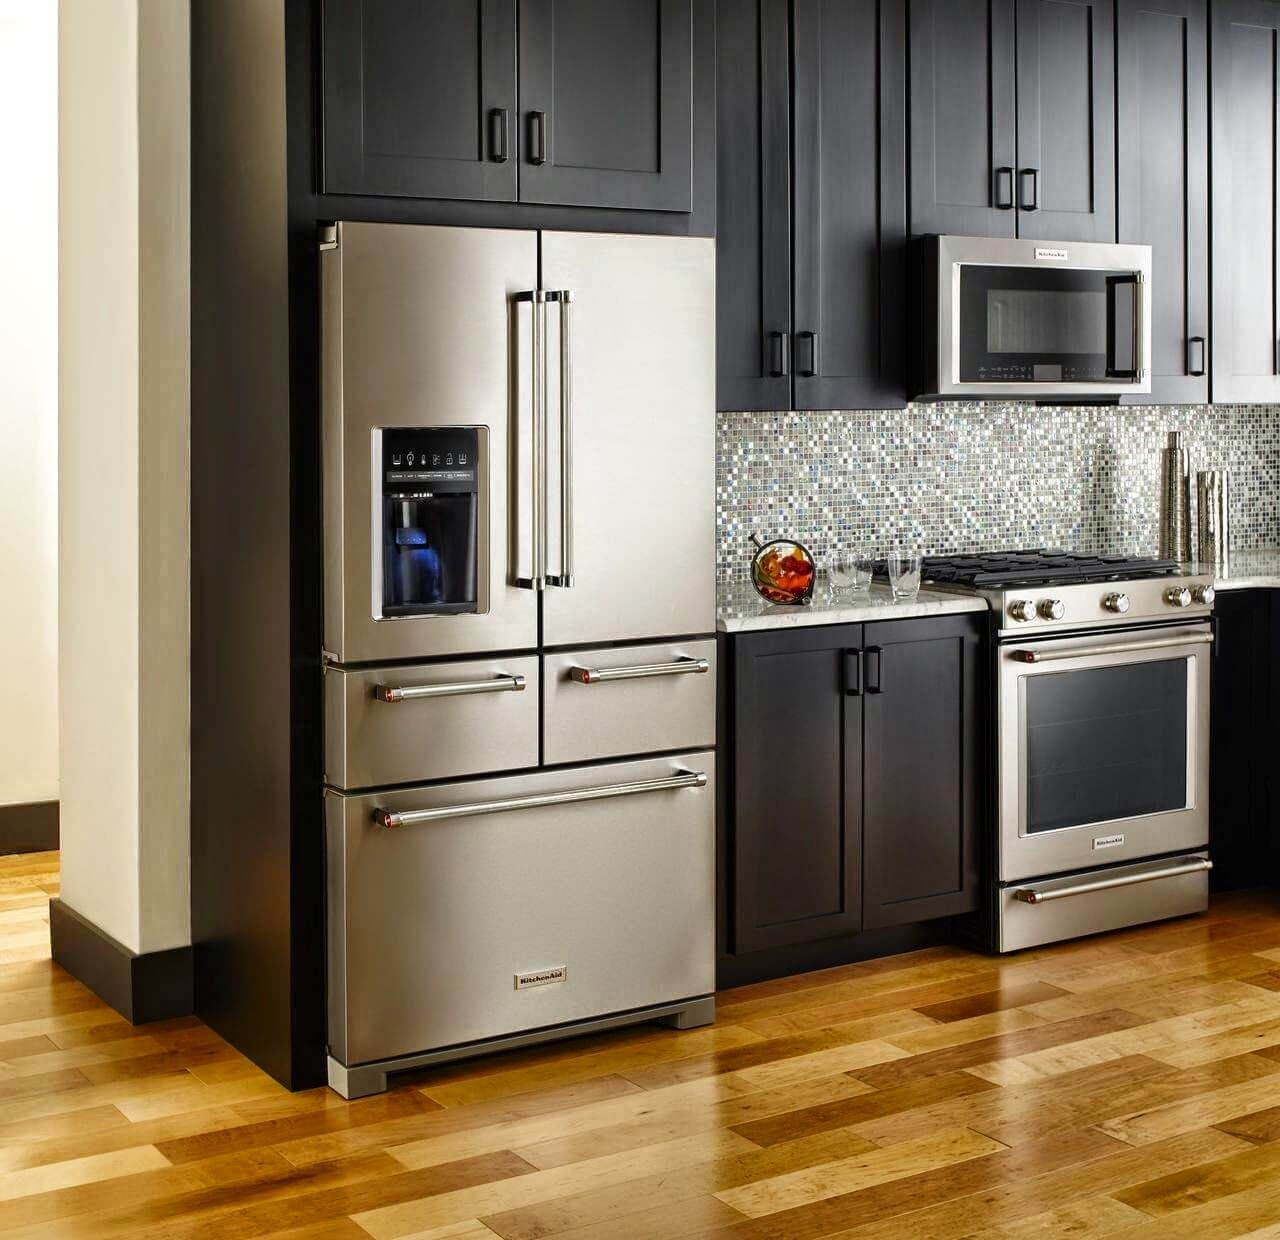 9 kitchen appliances every at home chef needs kitchen aid appliances kitchen appliance on kitchen appliances id=87311